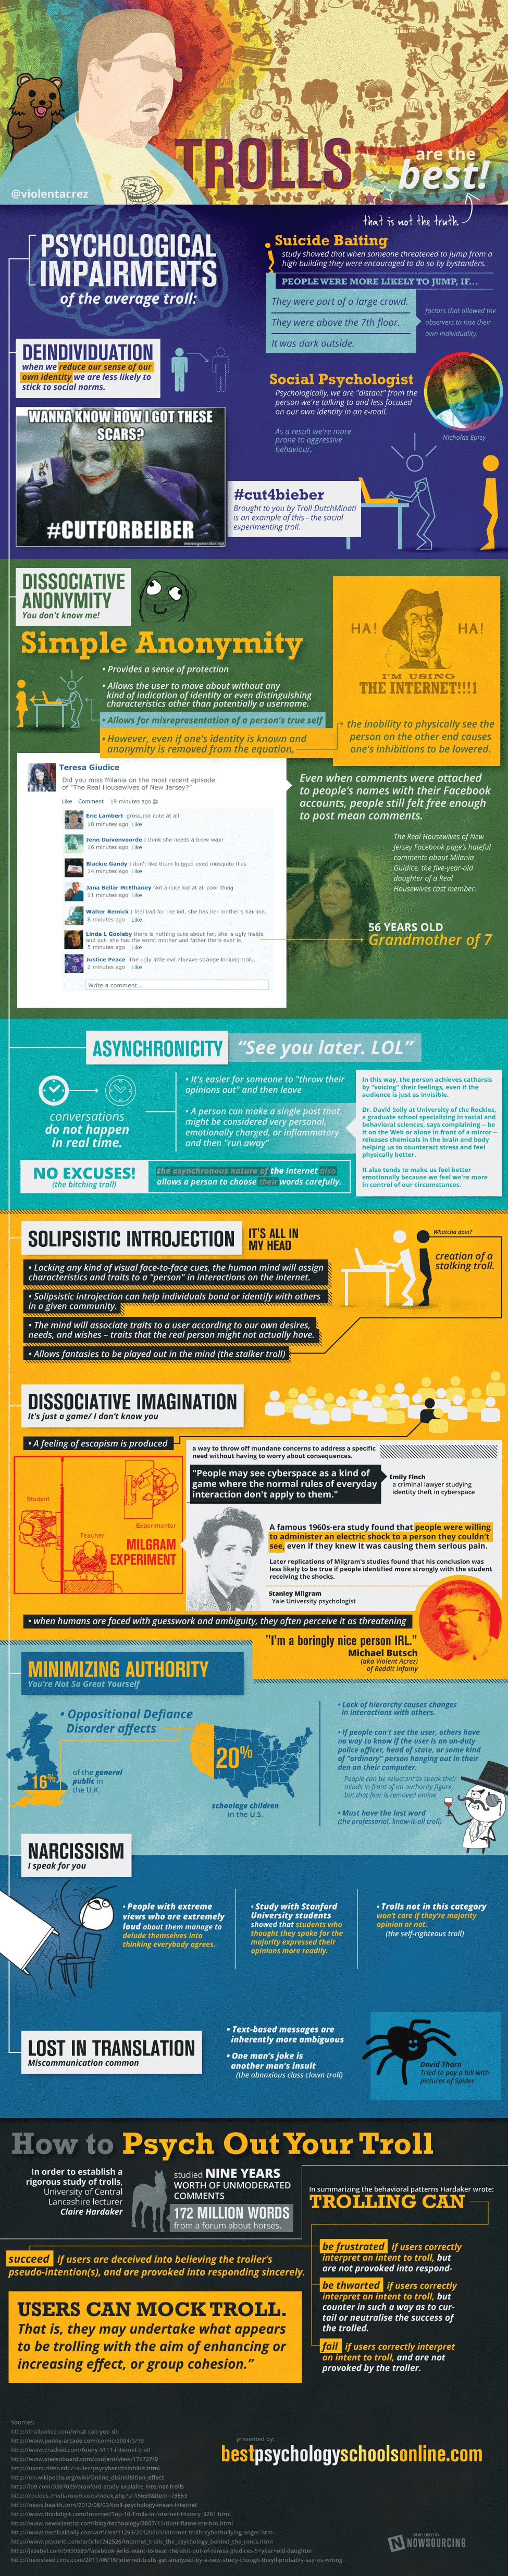 psychology-behind-internet-troll-infographic